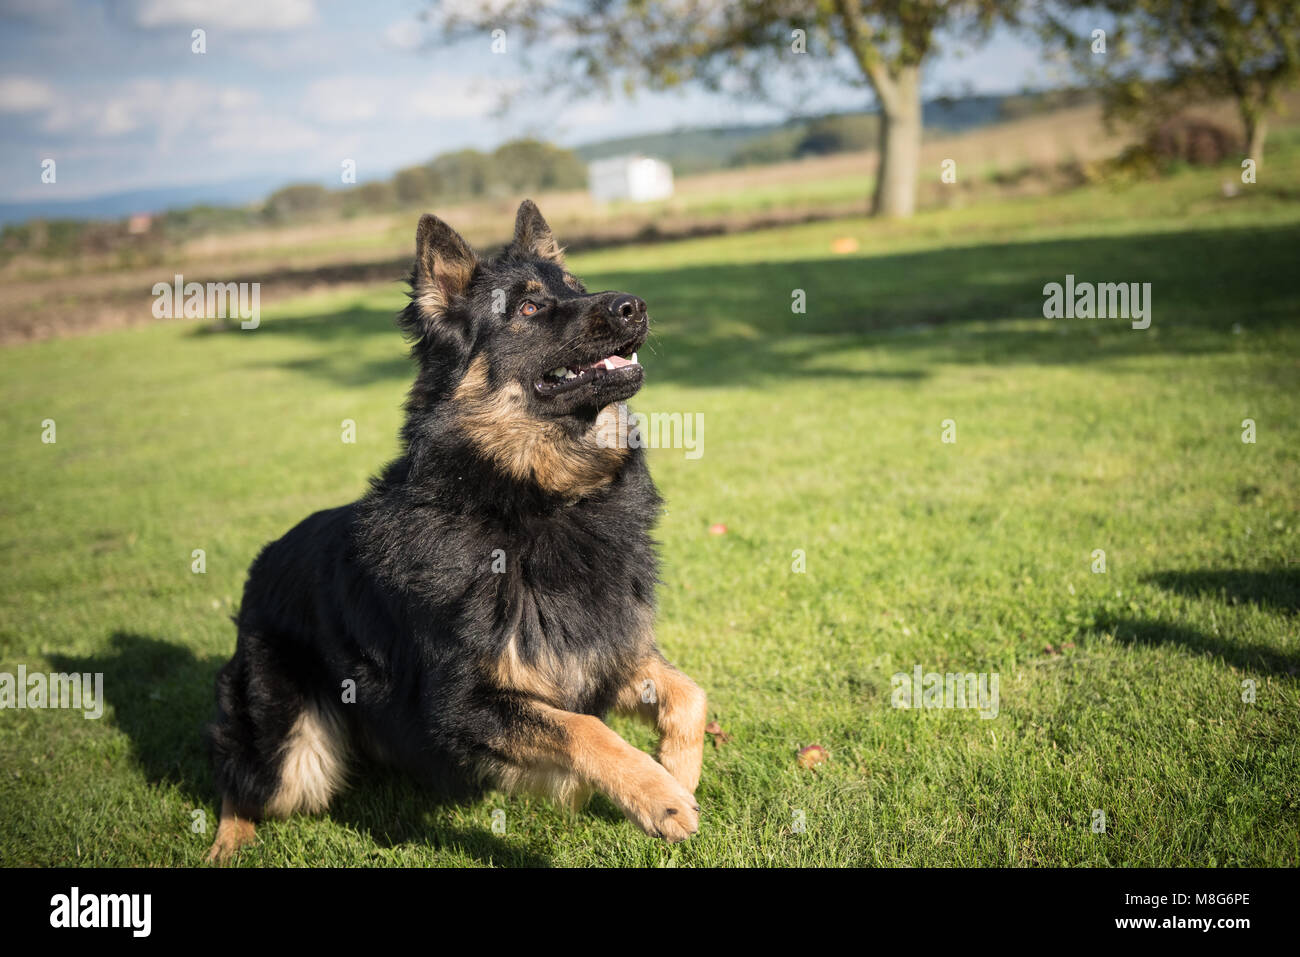 Young Bohemian Shepherd jumps and plays in a garden during a sunny day - Stock Image